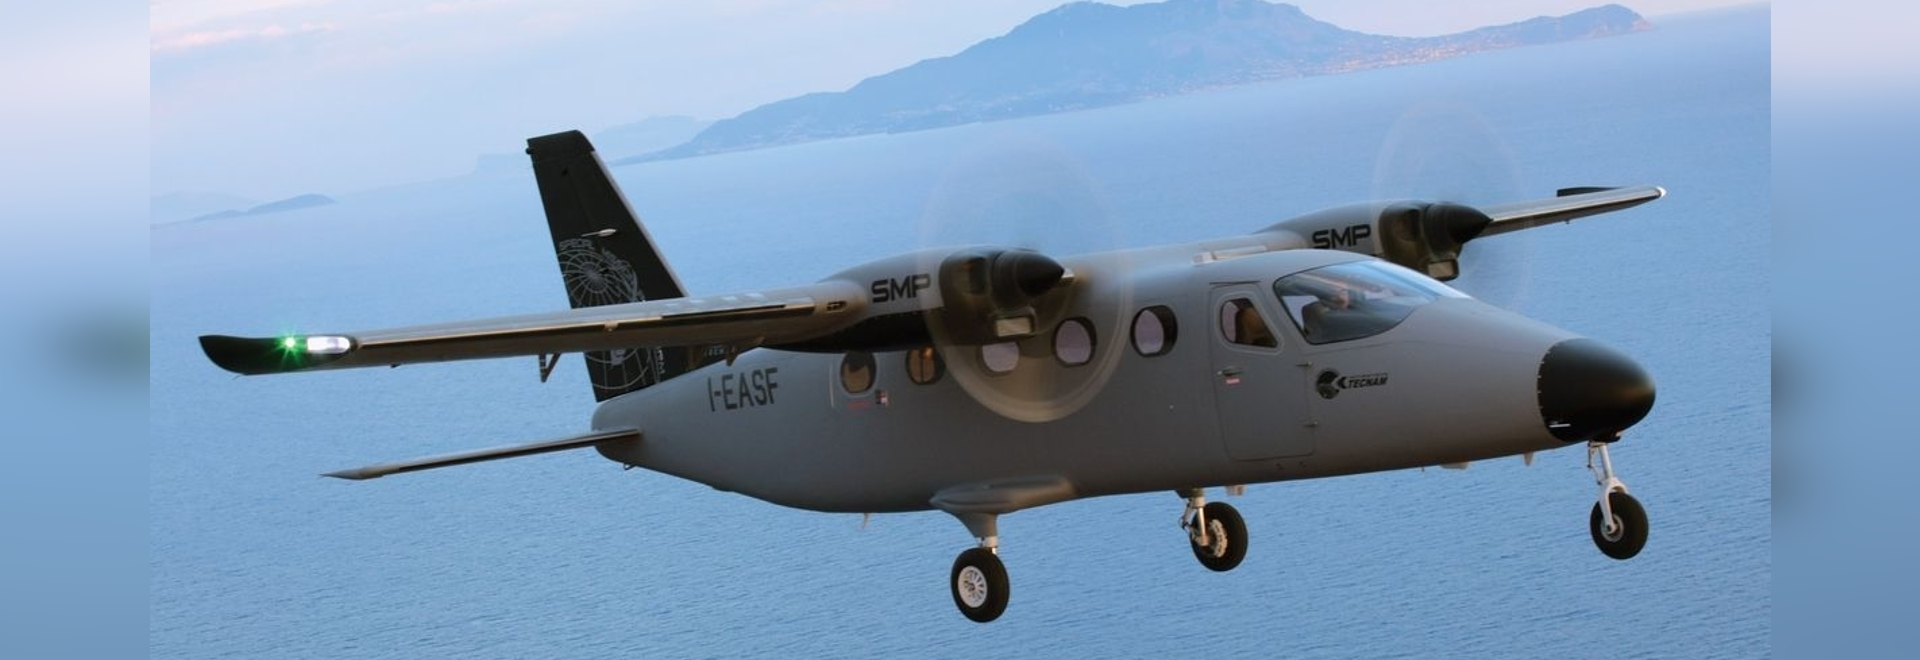 The Sentinel SMP takes the P2012—optimized for regional airlines—and turns it into an efficient surveillance platform.